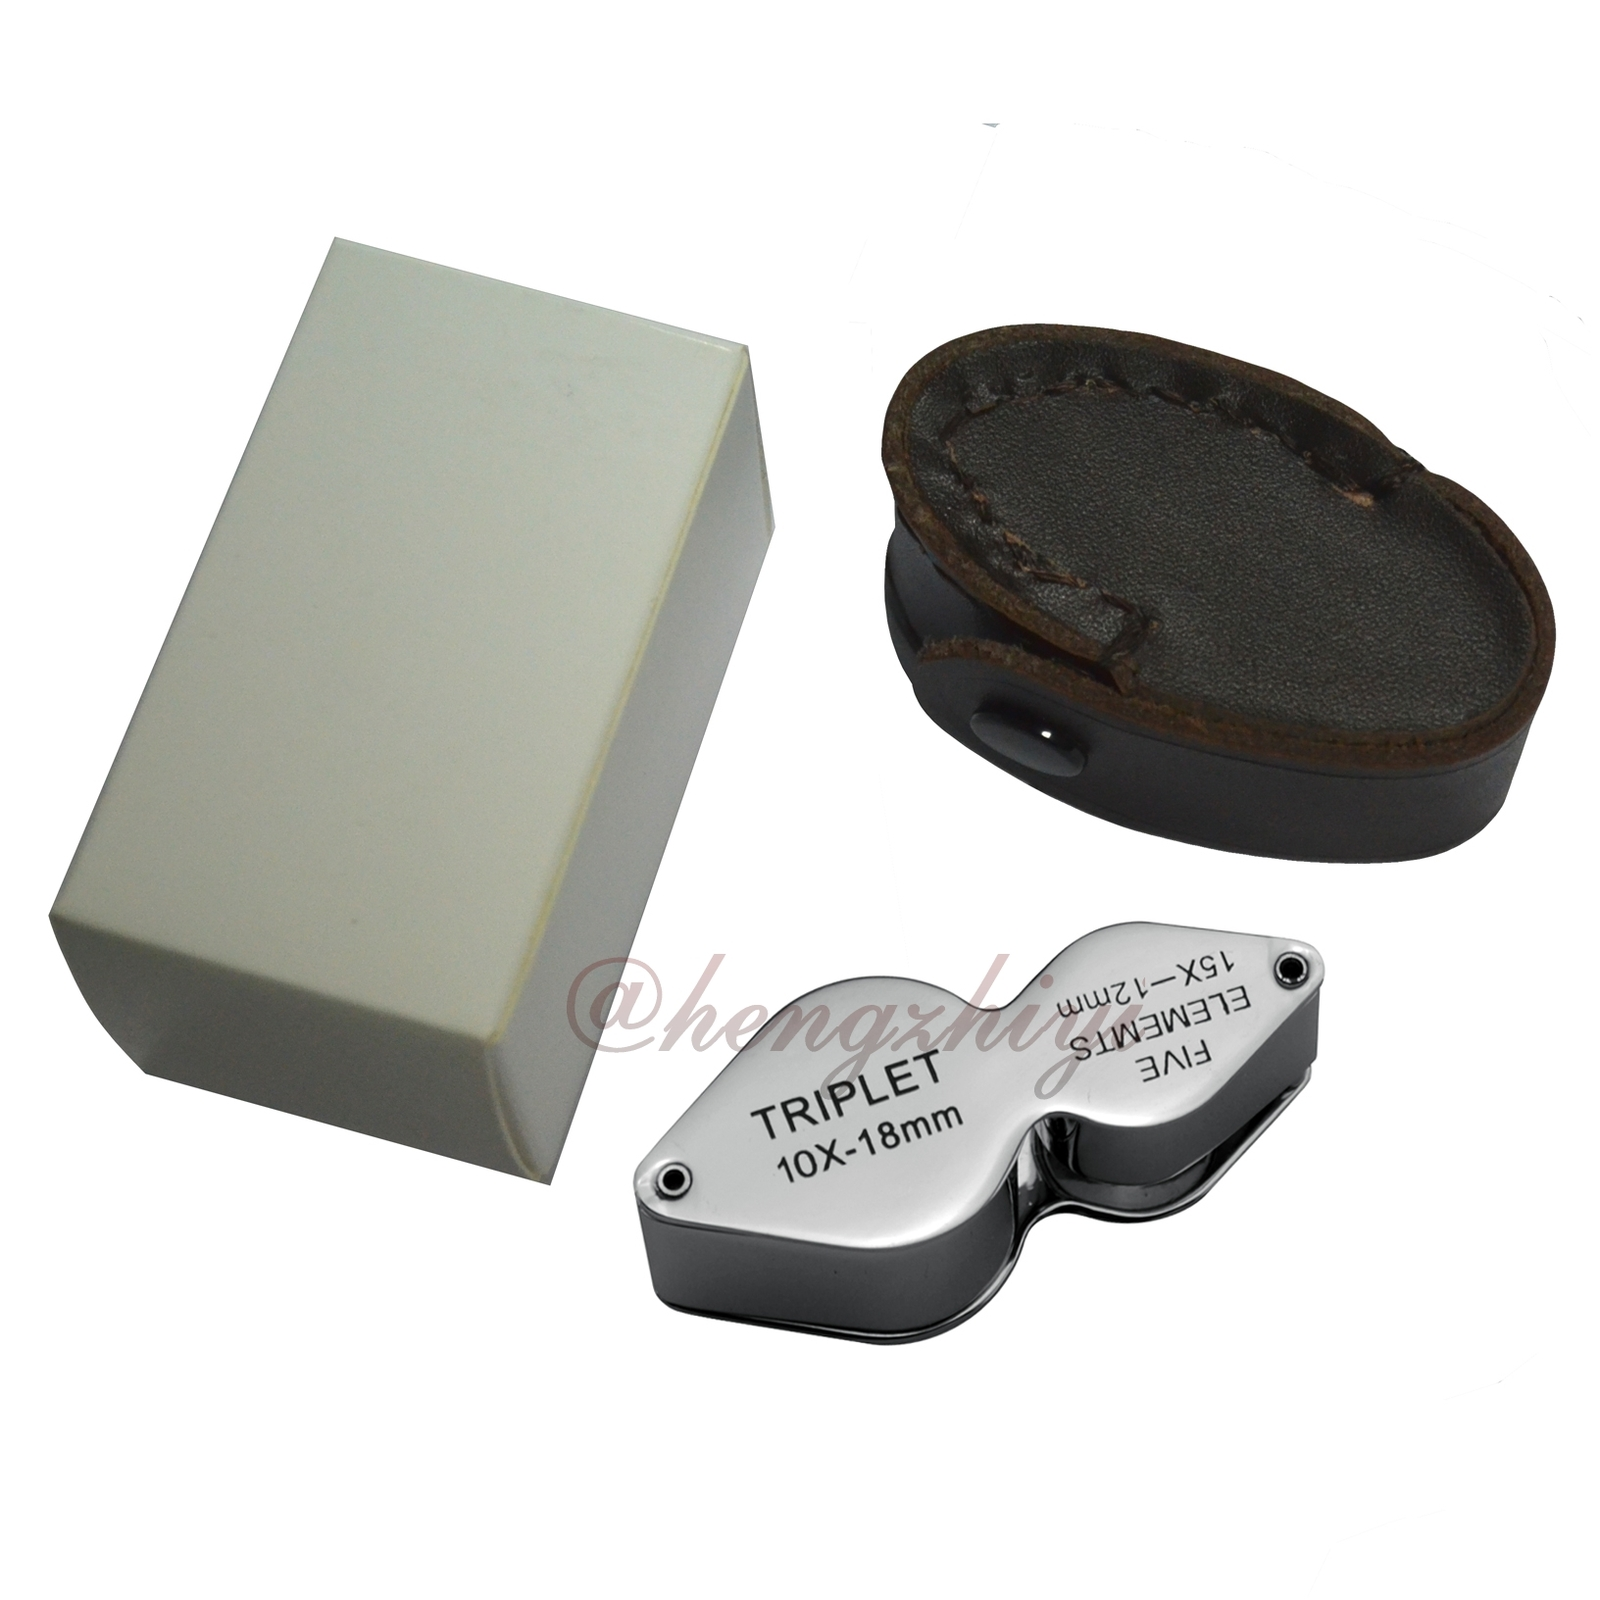 2-In-1 10X 18mm+15X 12mm Jewelry Gem Triplet Loupe Magnifier Lens w Leather Case